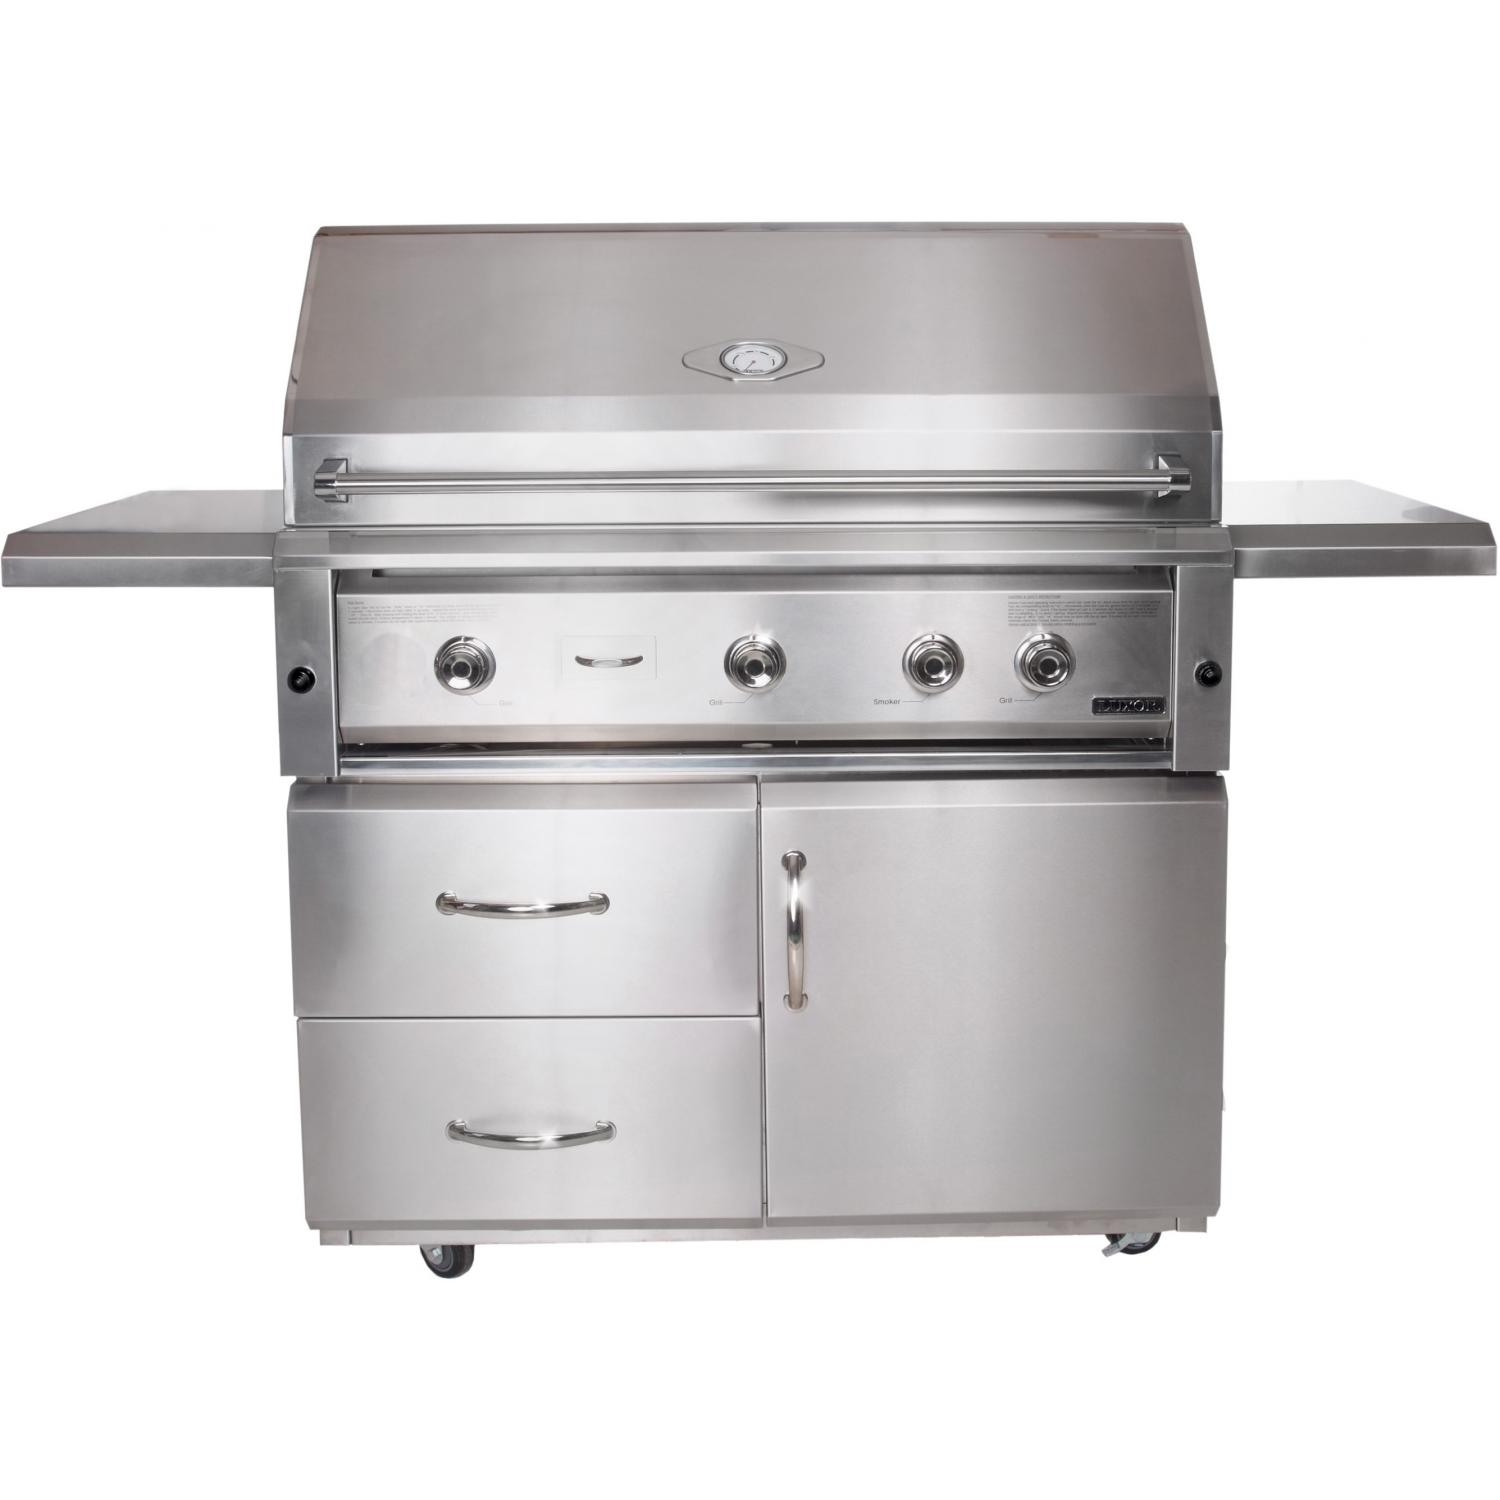 Luxor Gas Grills 42 Inch Natural Gas Grill On Cart AHT-42CVF-NG